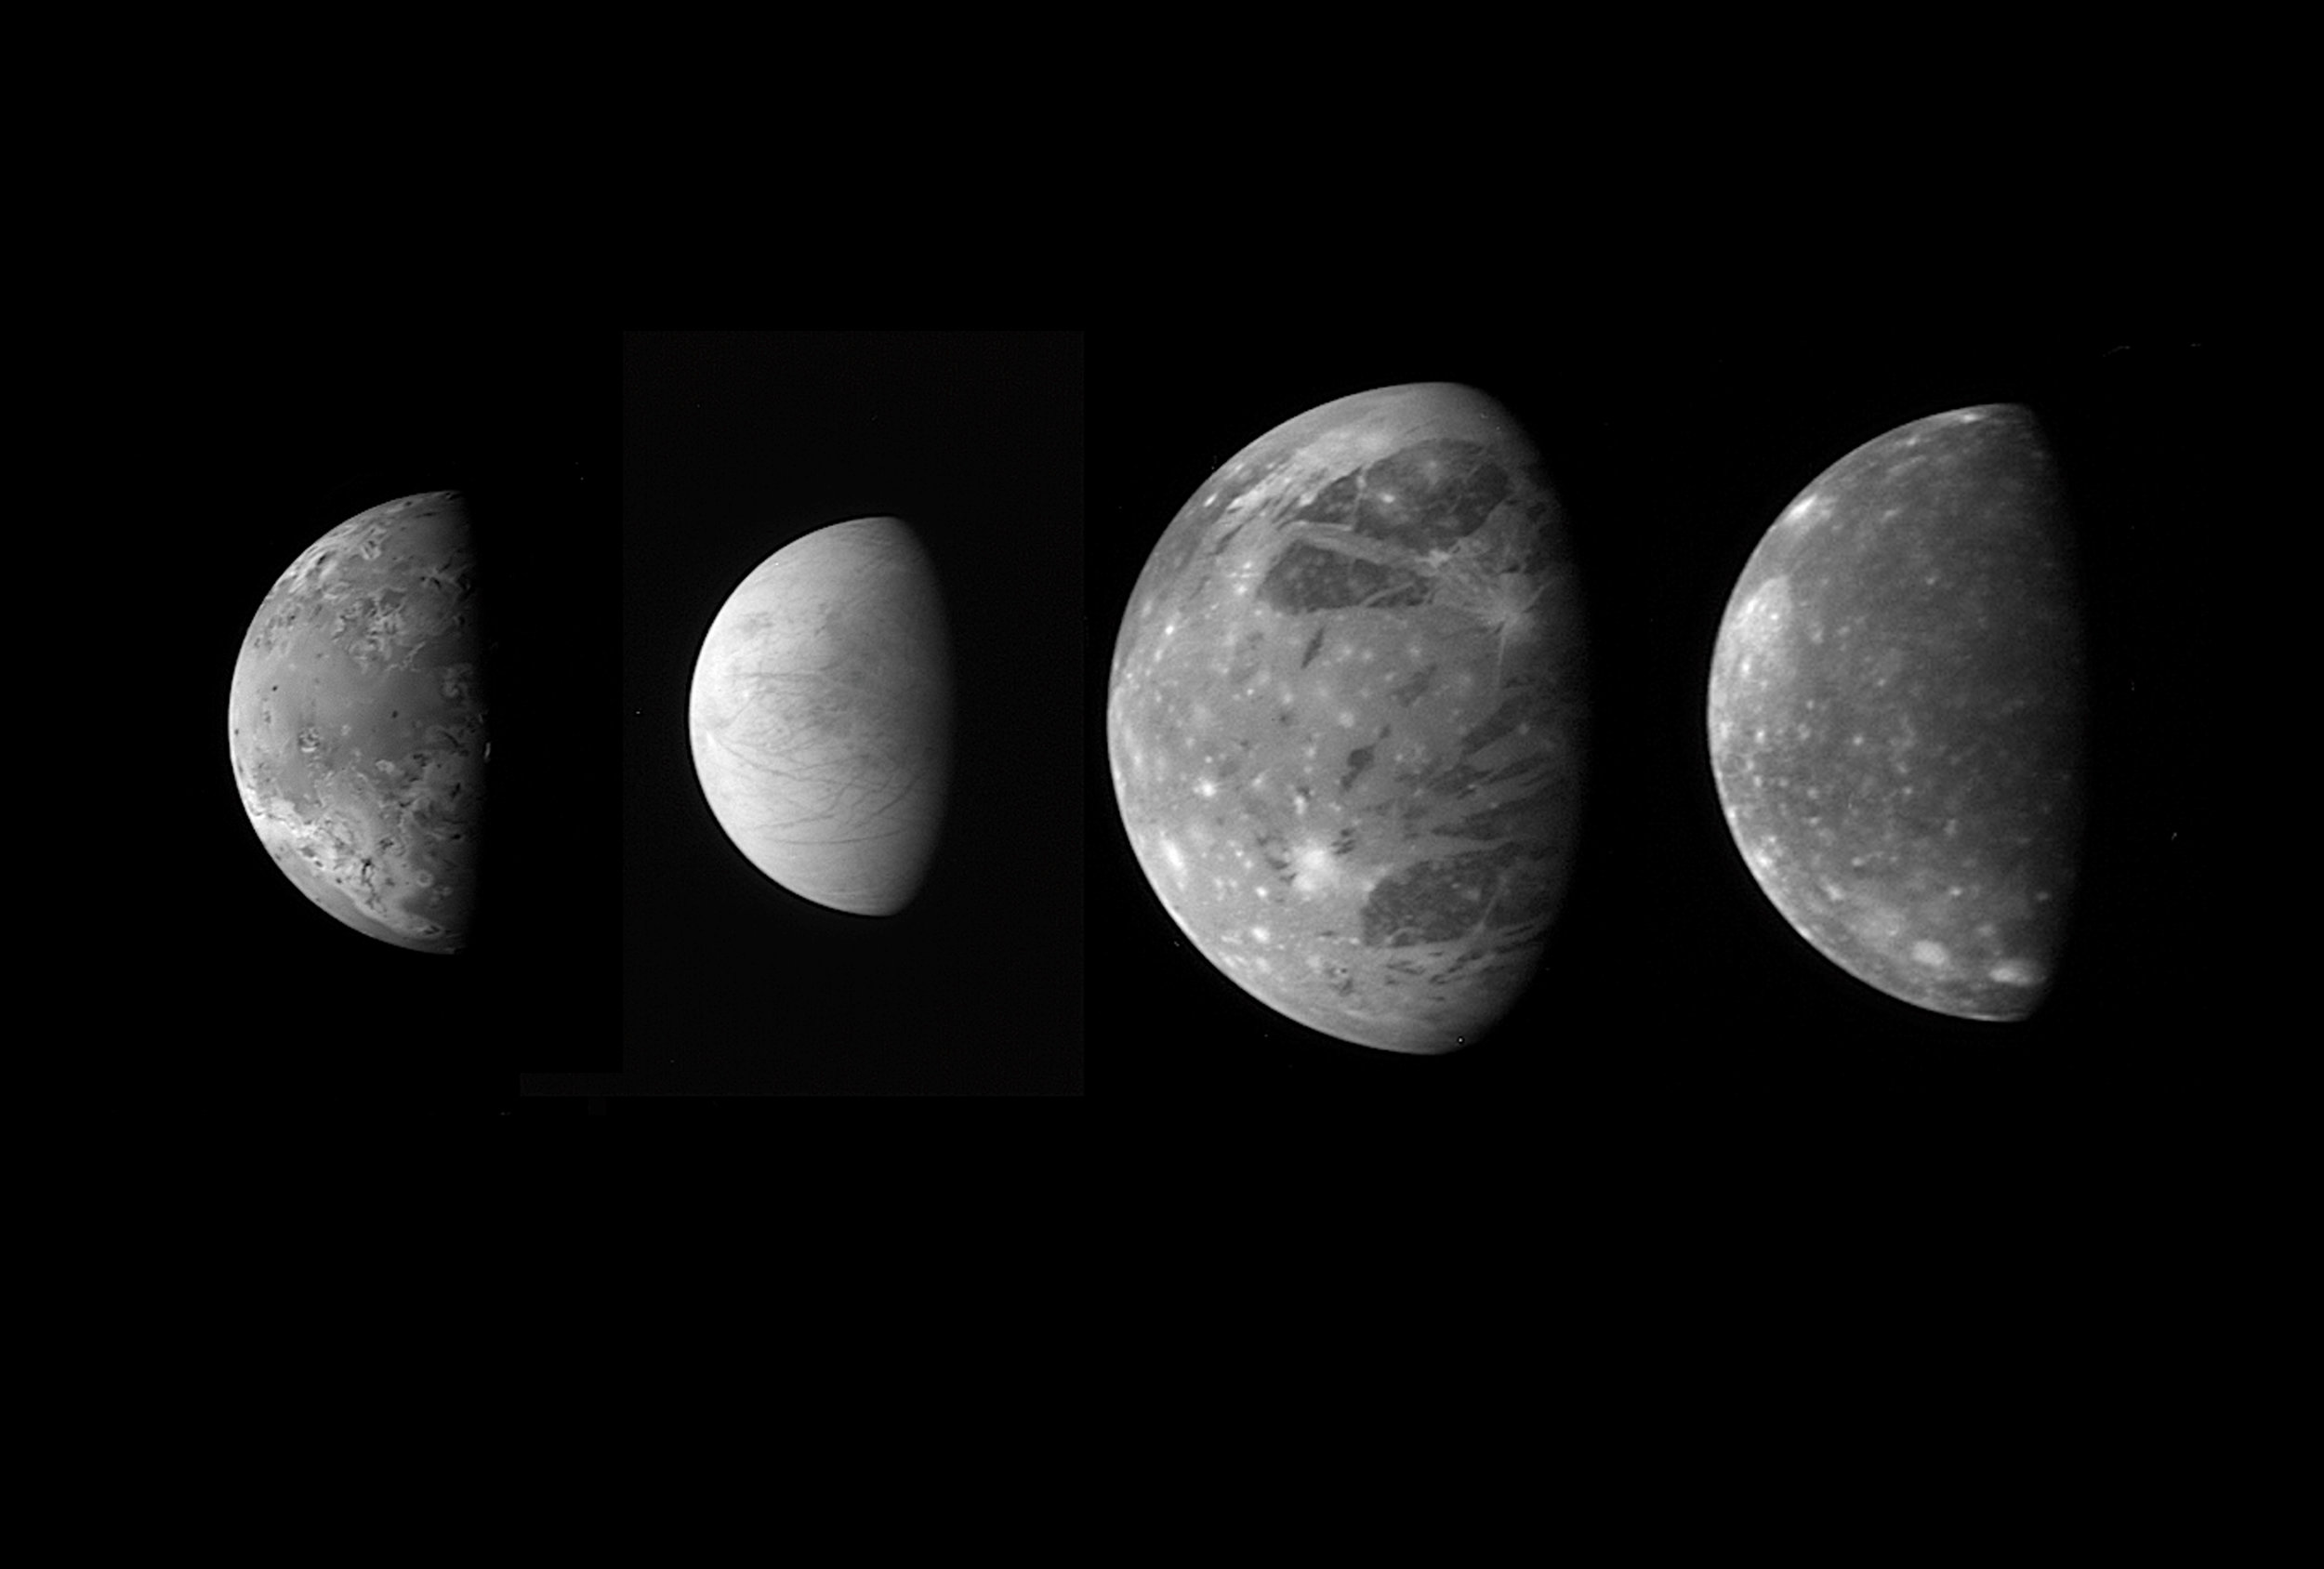 "A ""family portrait"" of the four Galilean satellites (Io Europa, Ganymede and Callisto) around Jupiter, taken by the New Horizons spacecraft and released in 2007. Credit: NASA/Johns Hopkins University Applied Physics Laboratory/Southwest Research Institute"